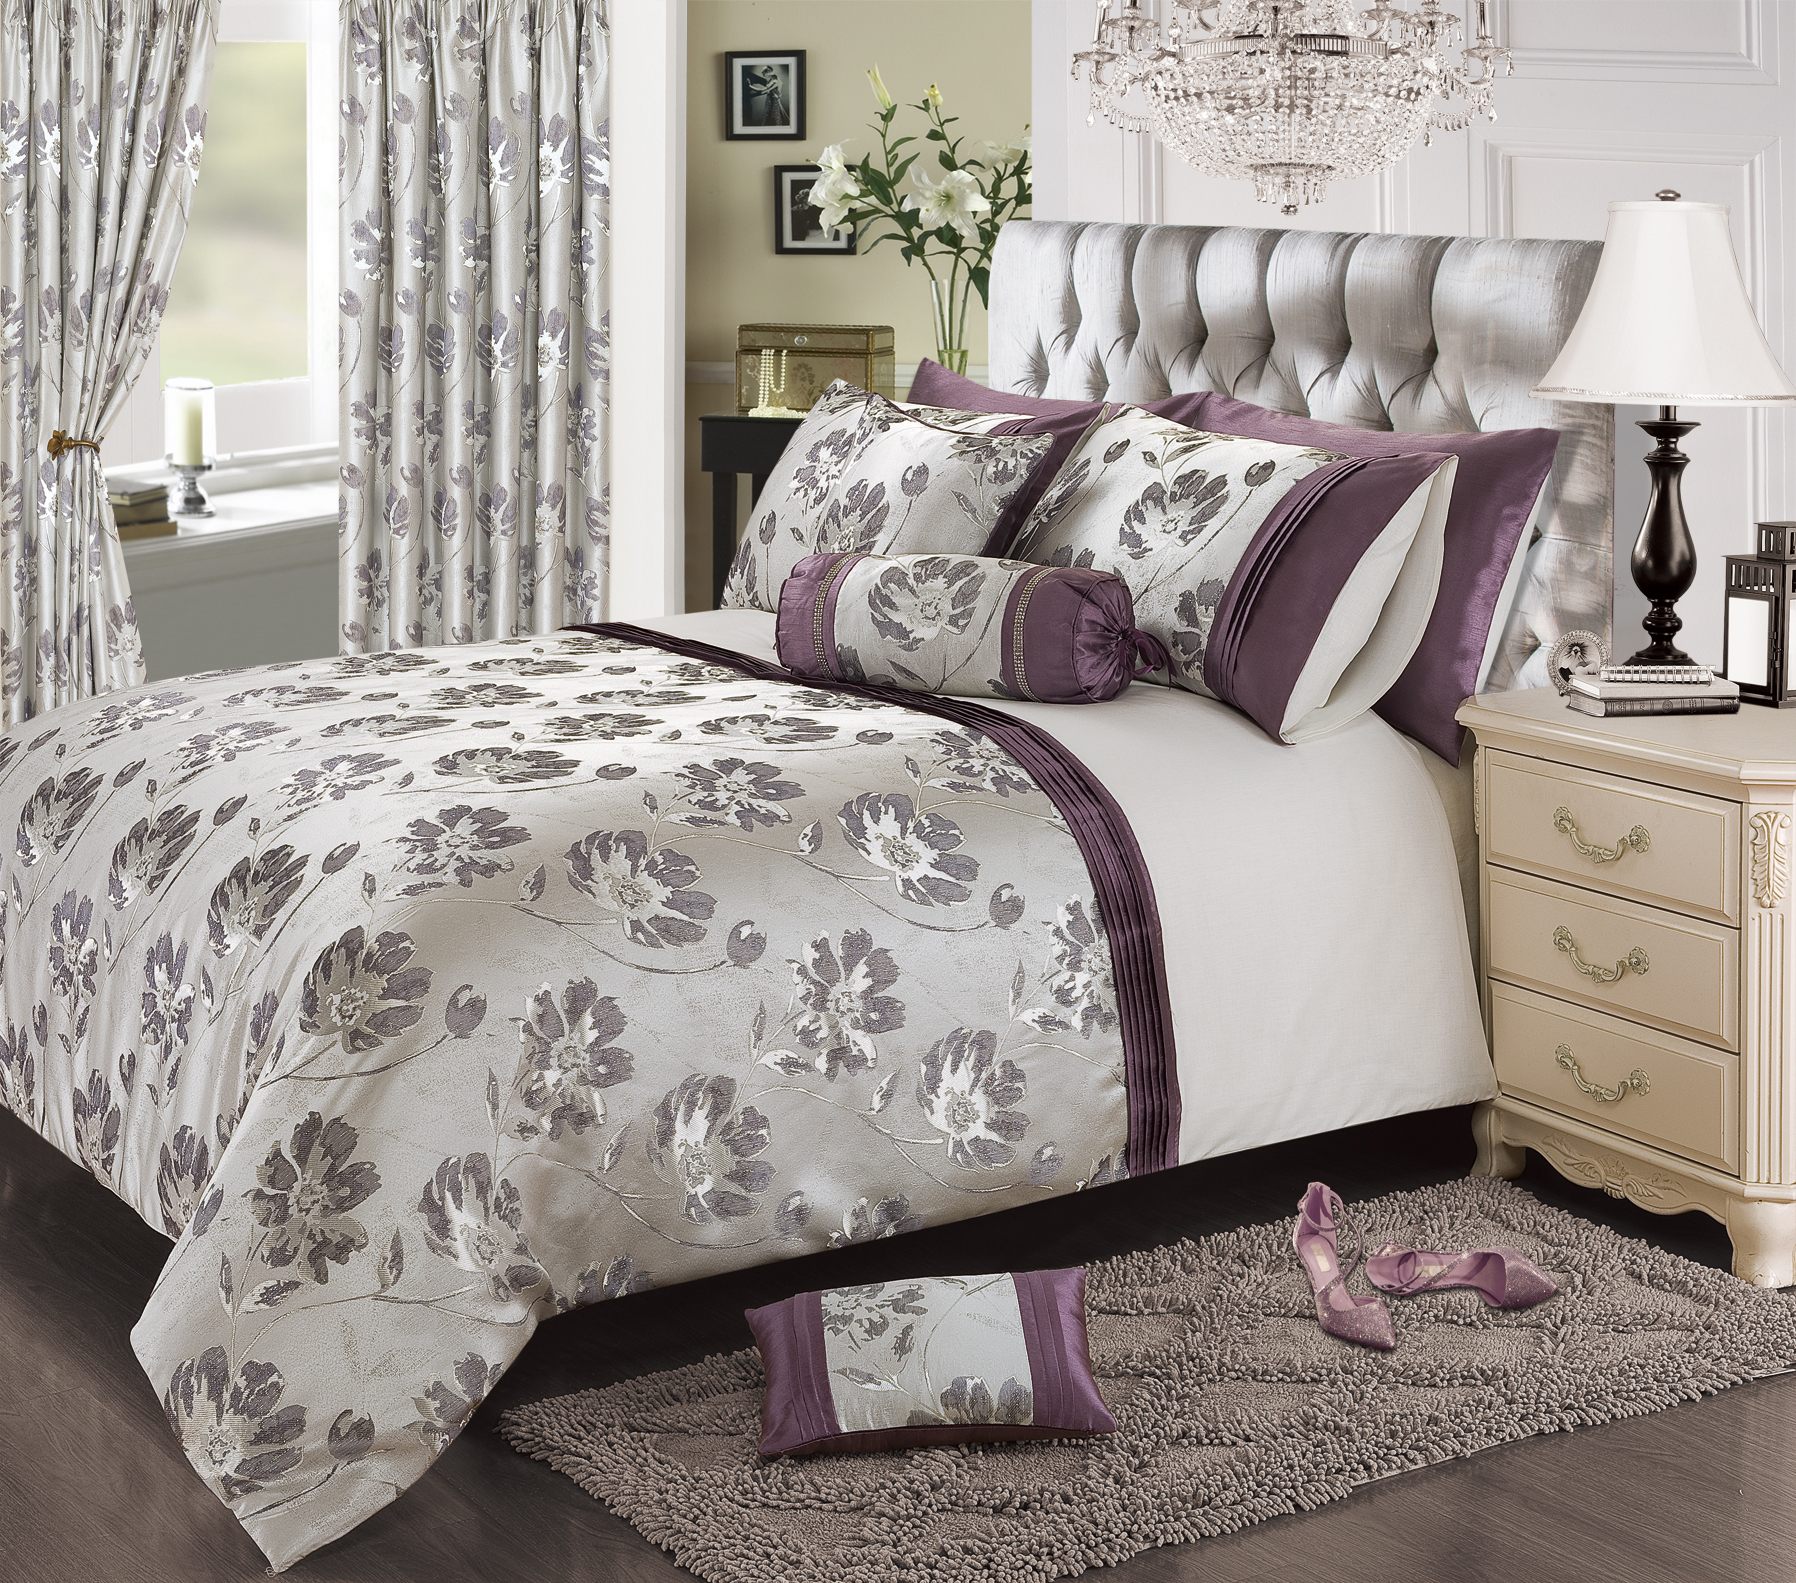 Panache Duvet Cover Set From Century Textiles